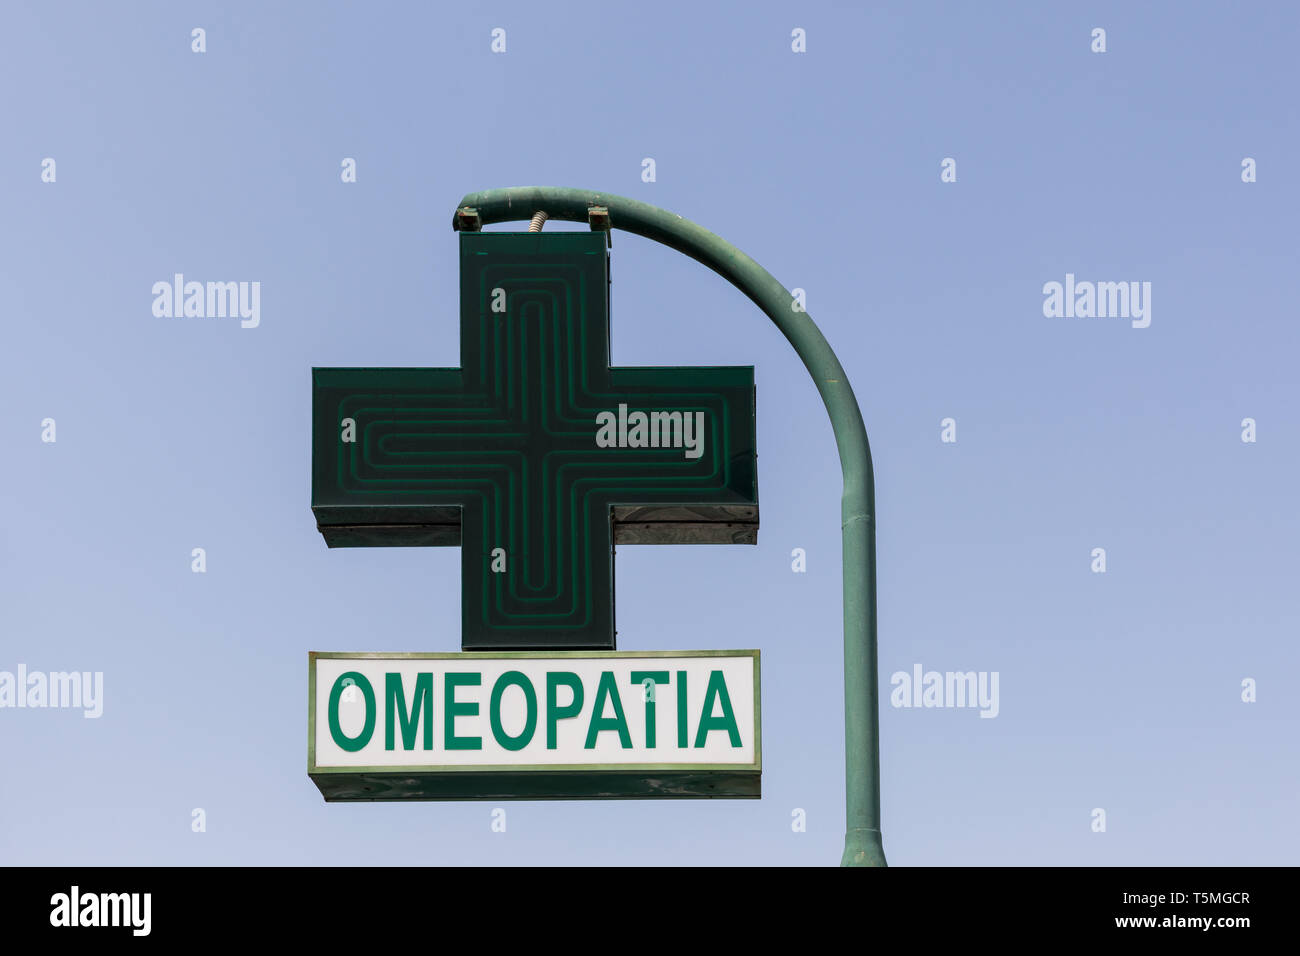 Omeopatia (homeopathy) sign - Stock Image